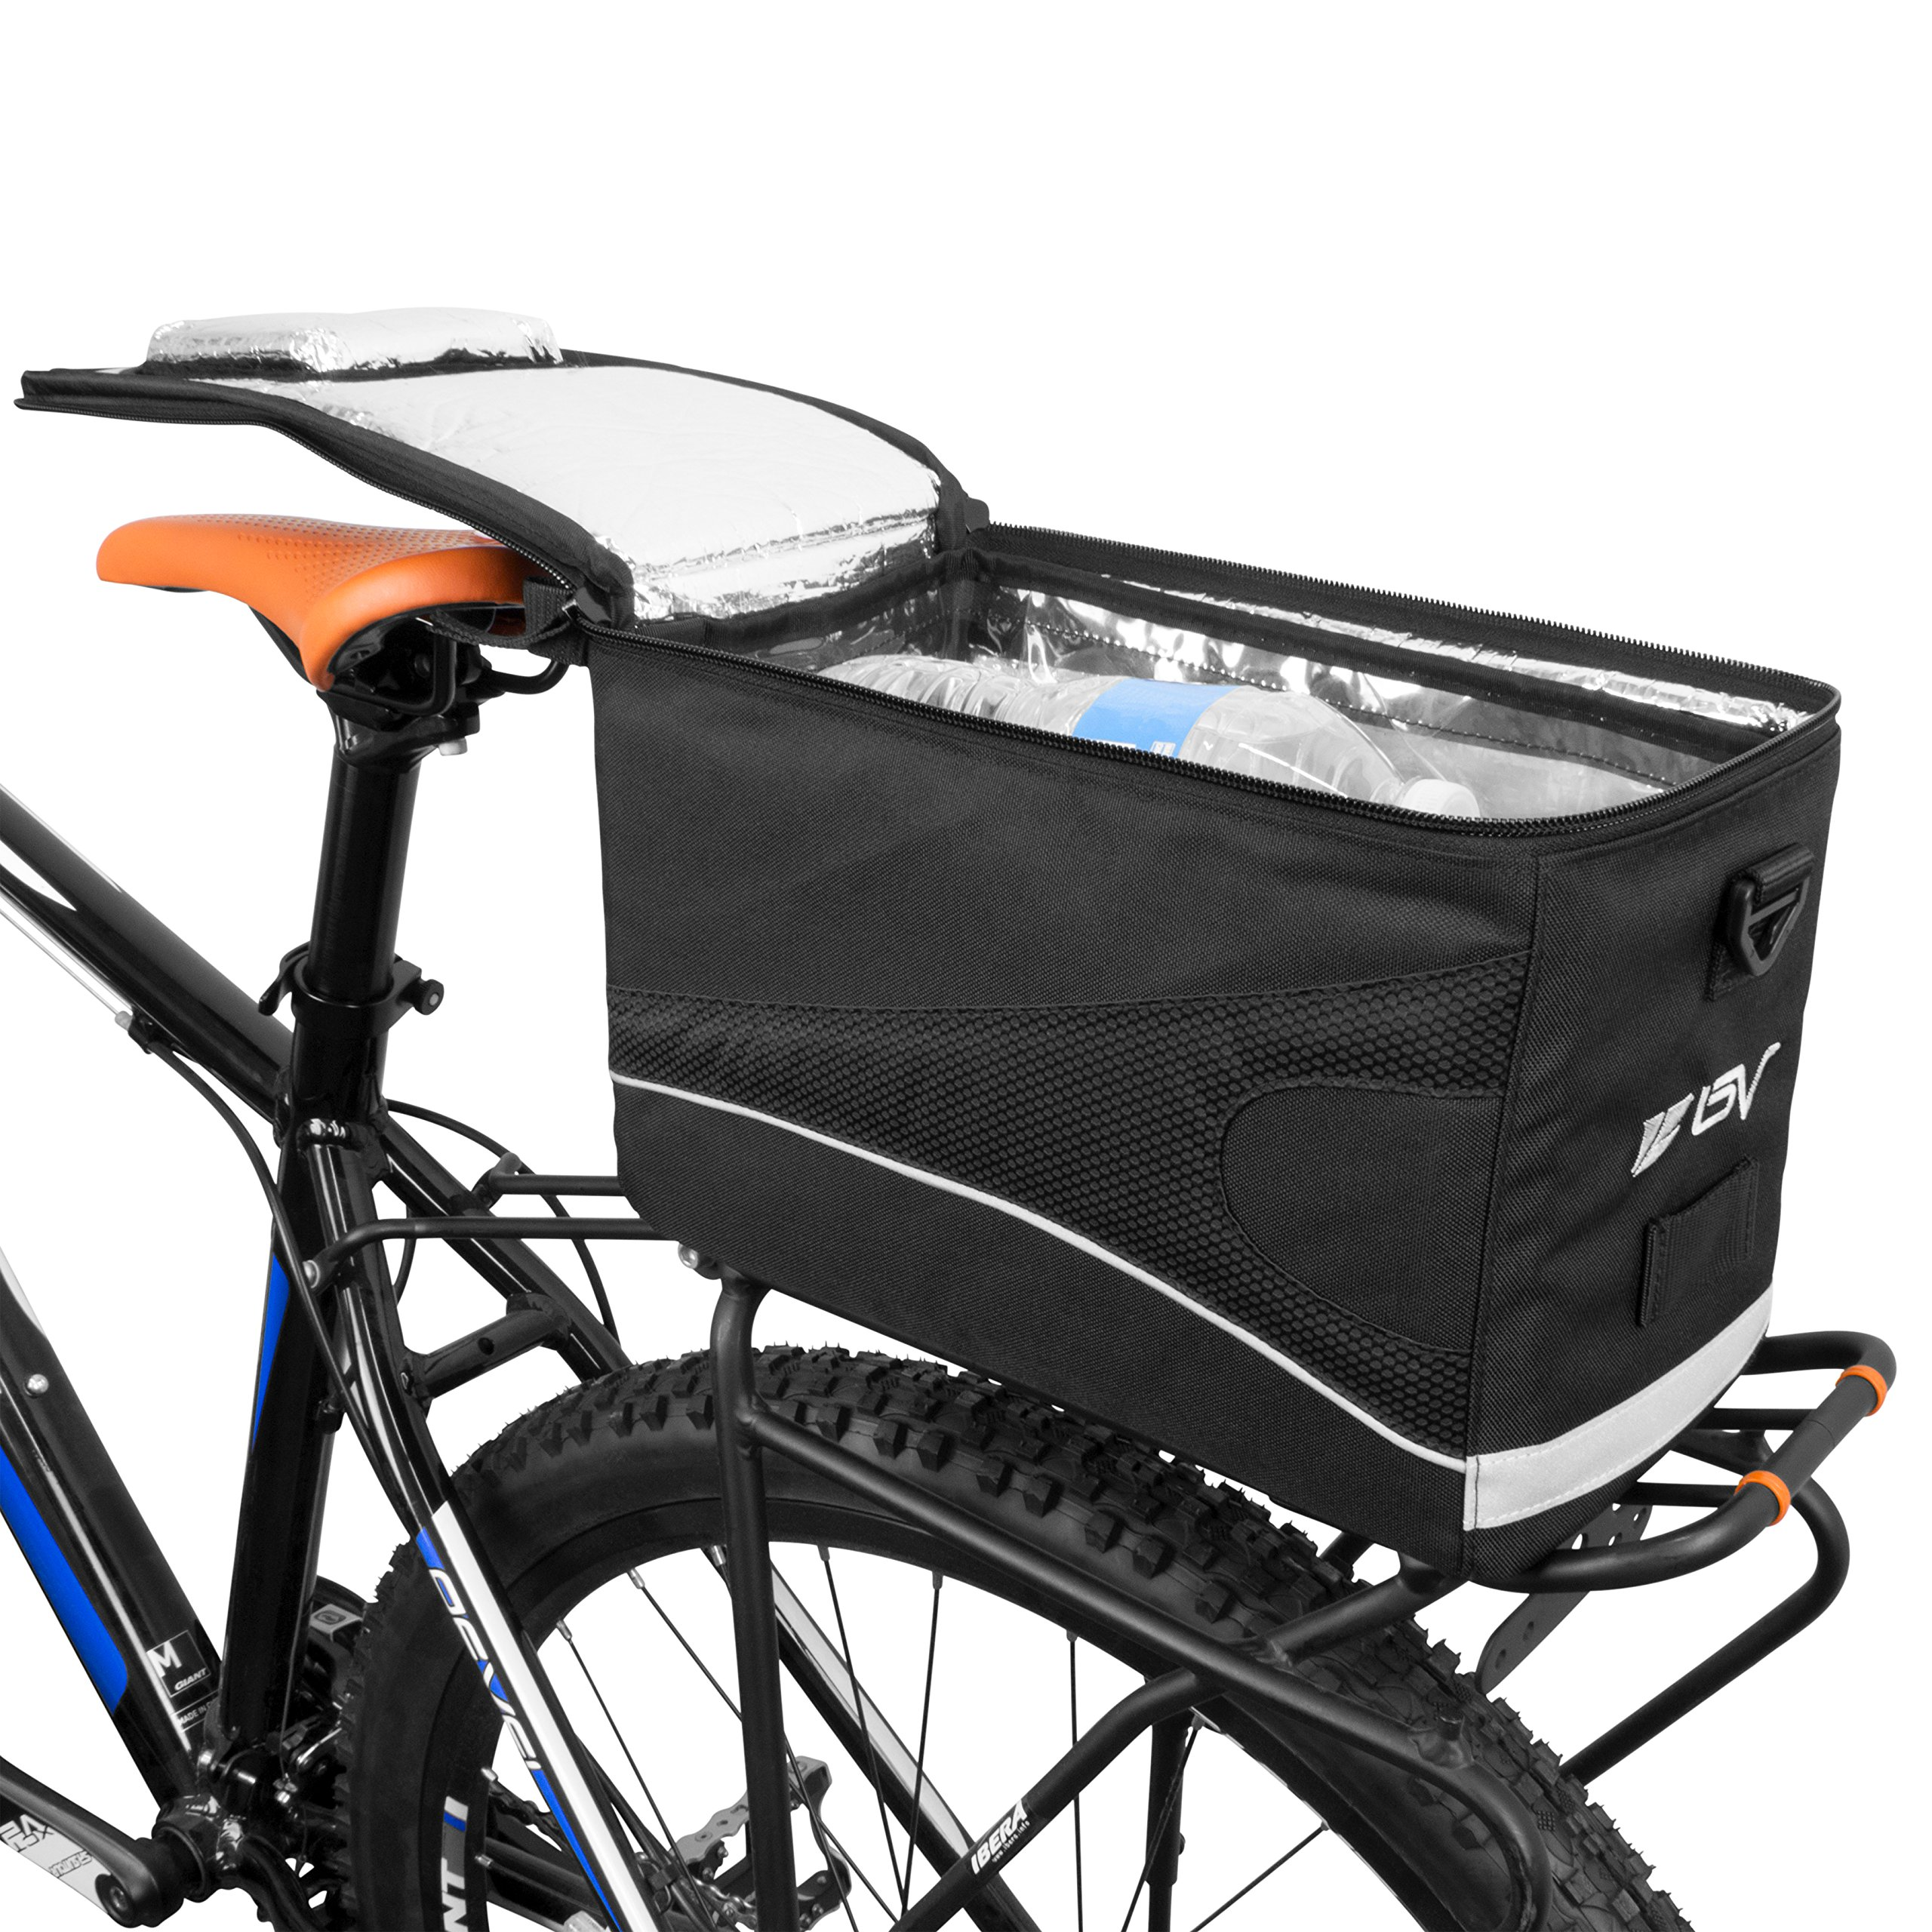 BV Insulated Trunk Cooler Bag for Warm or Cold Items, Shoulder Strap & Quick-Access Lid Opening